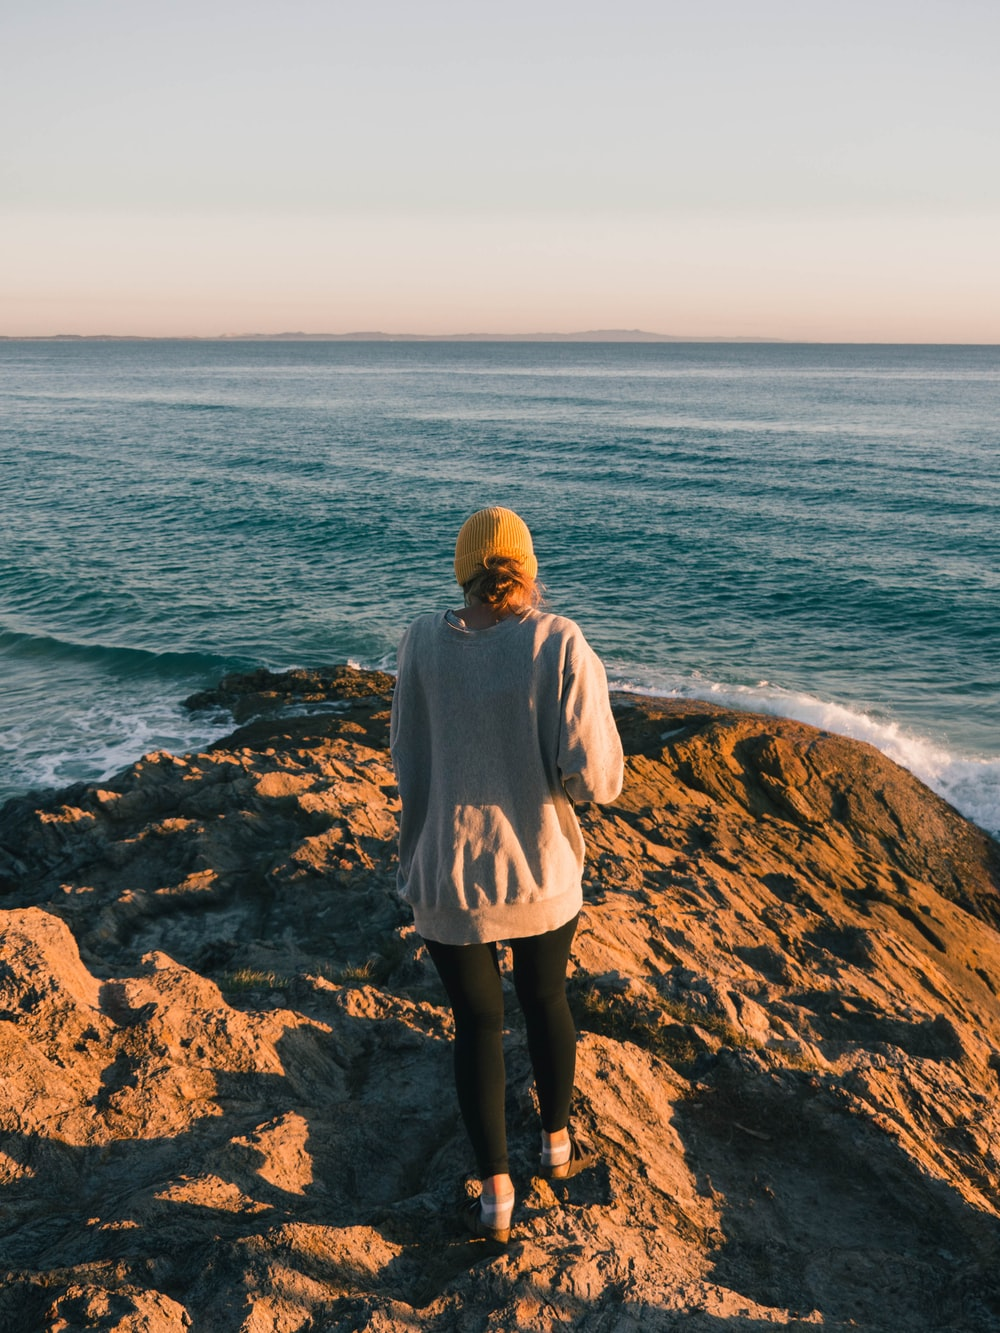 woman in gray hoodie standing on brown rock near body of water during daytime